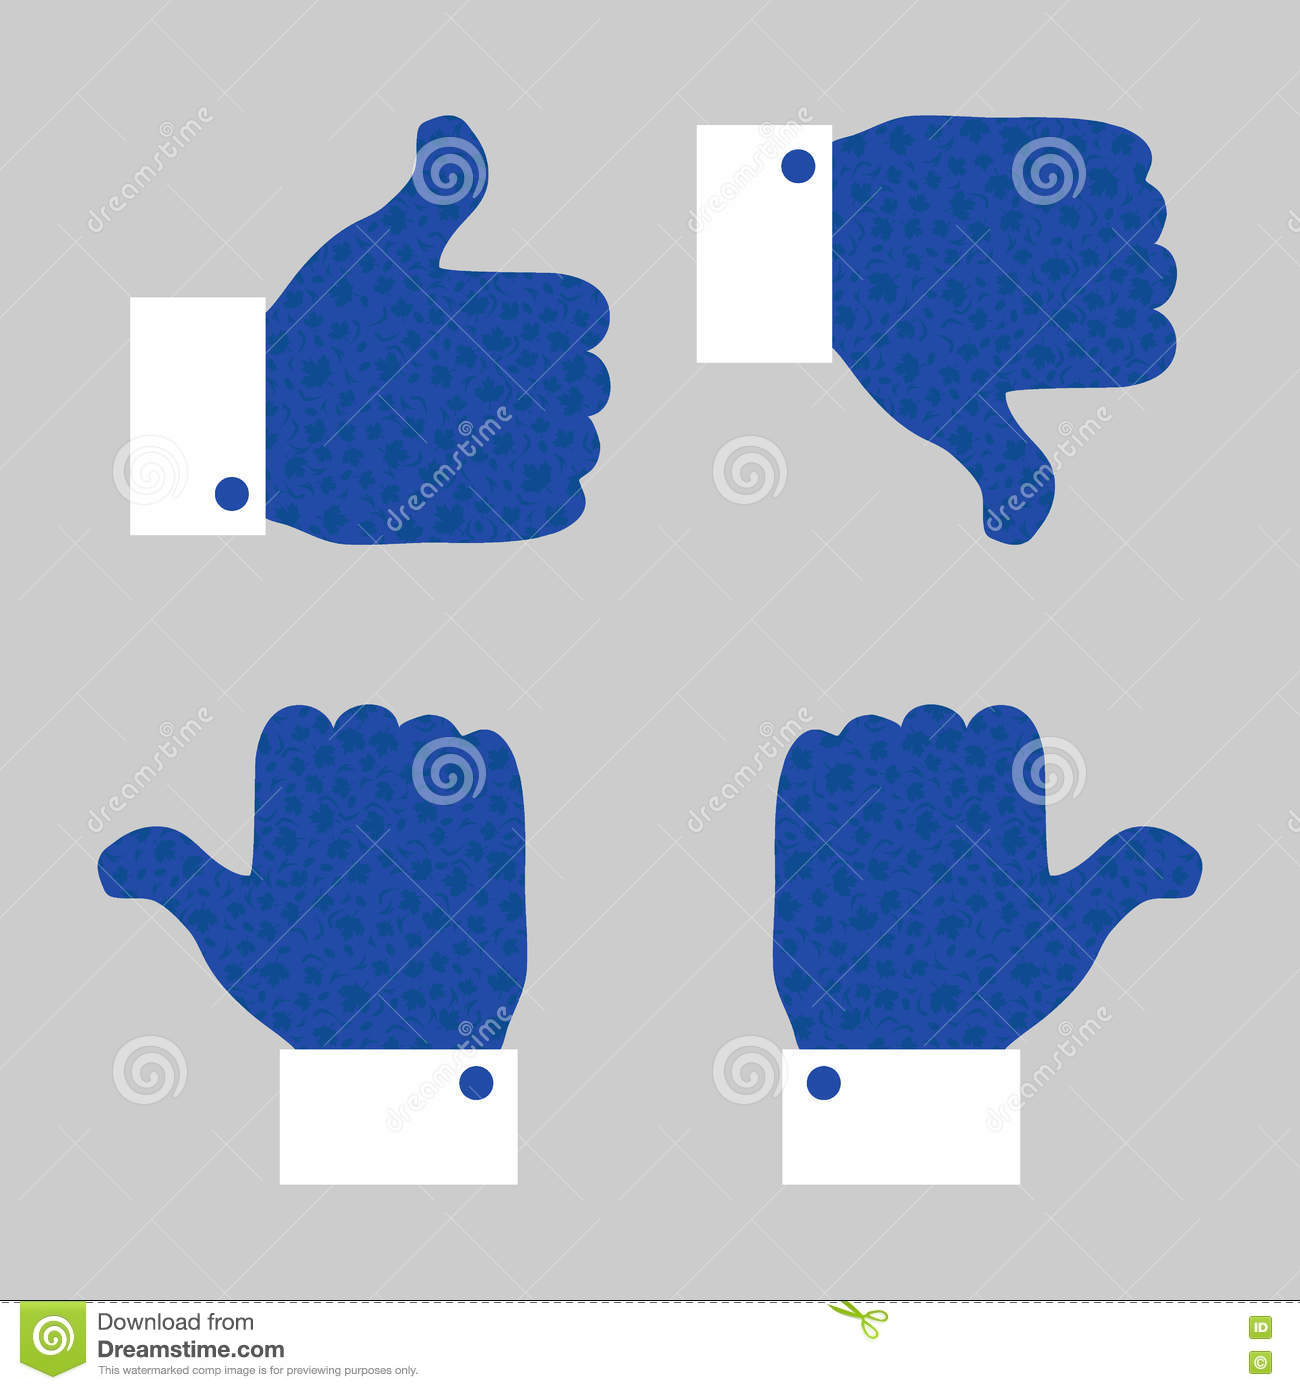 Thumb Up Down Icon With World Cup Of Ice Hockey Stock Vector